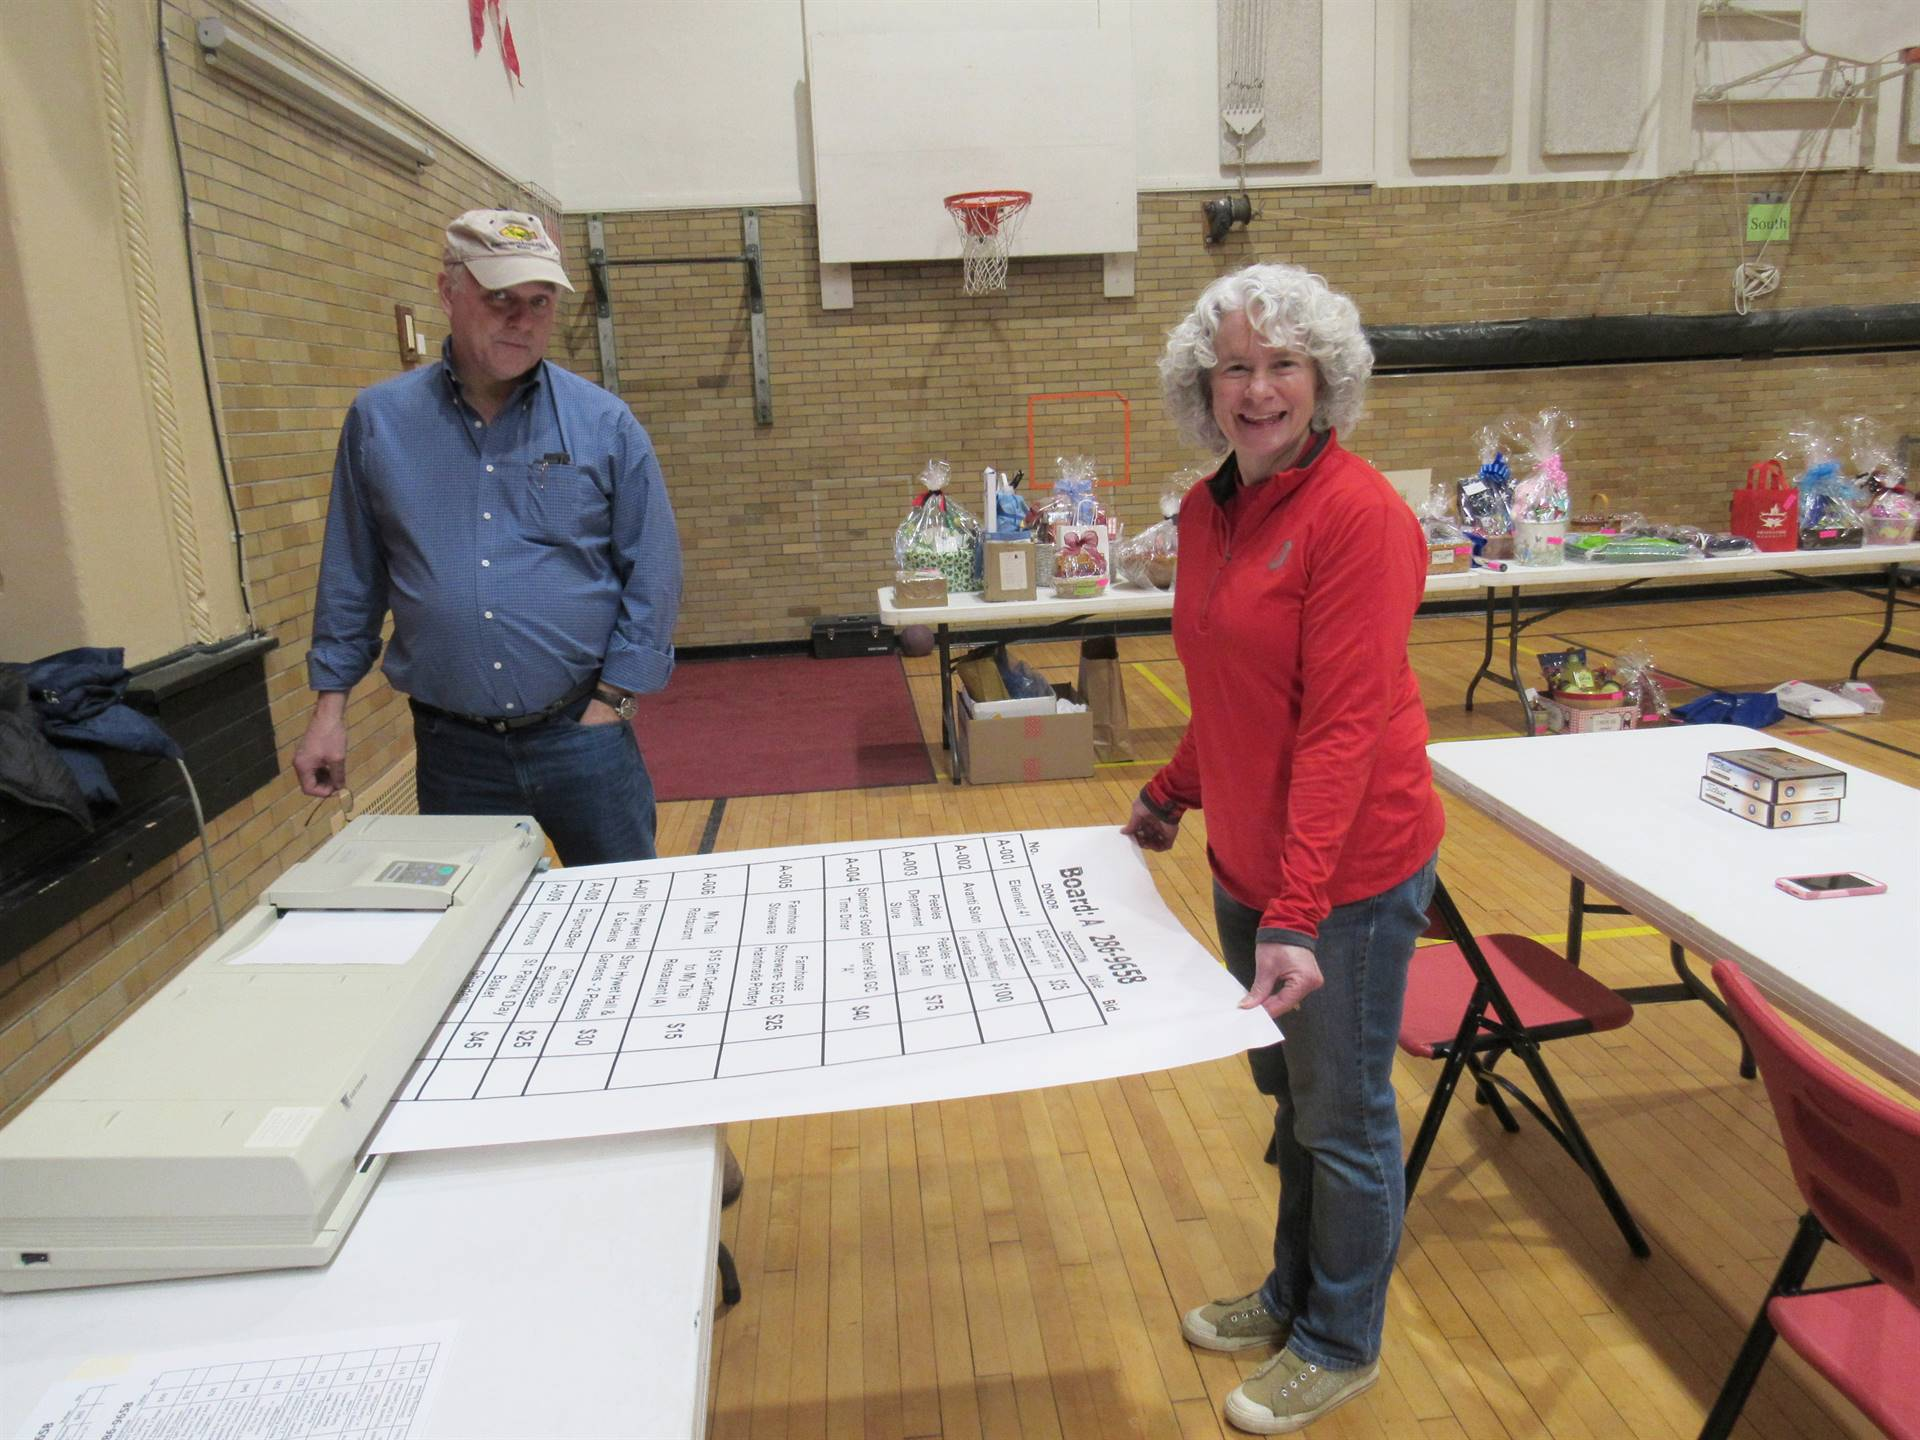 Photo 4:  Chuck Rischar and CoCo Griffis in the Park Elementary School gymnasium preparing for the C